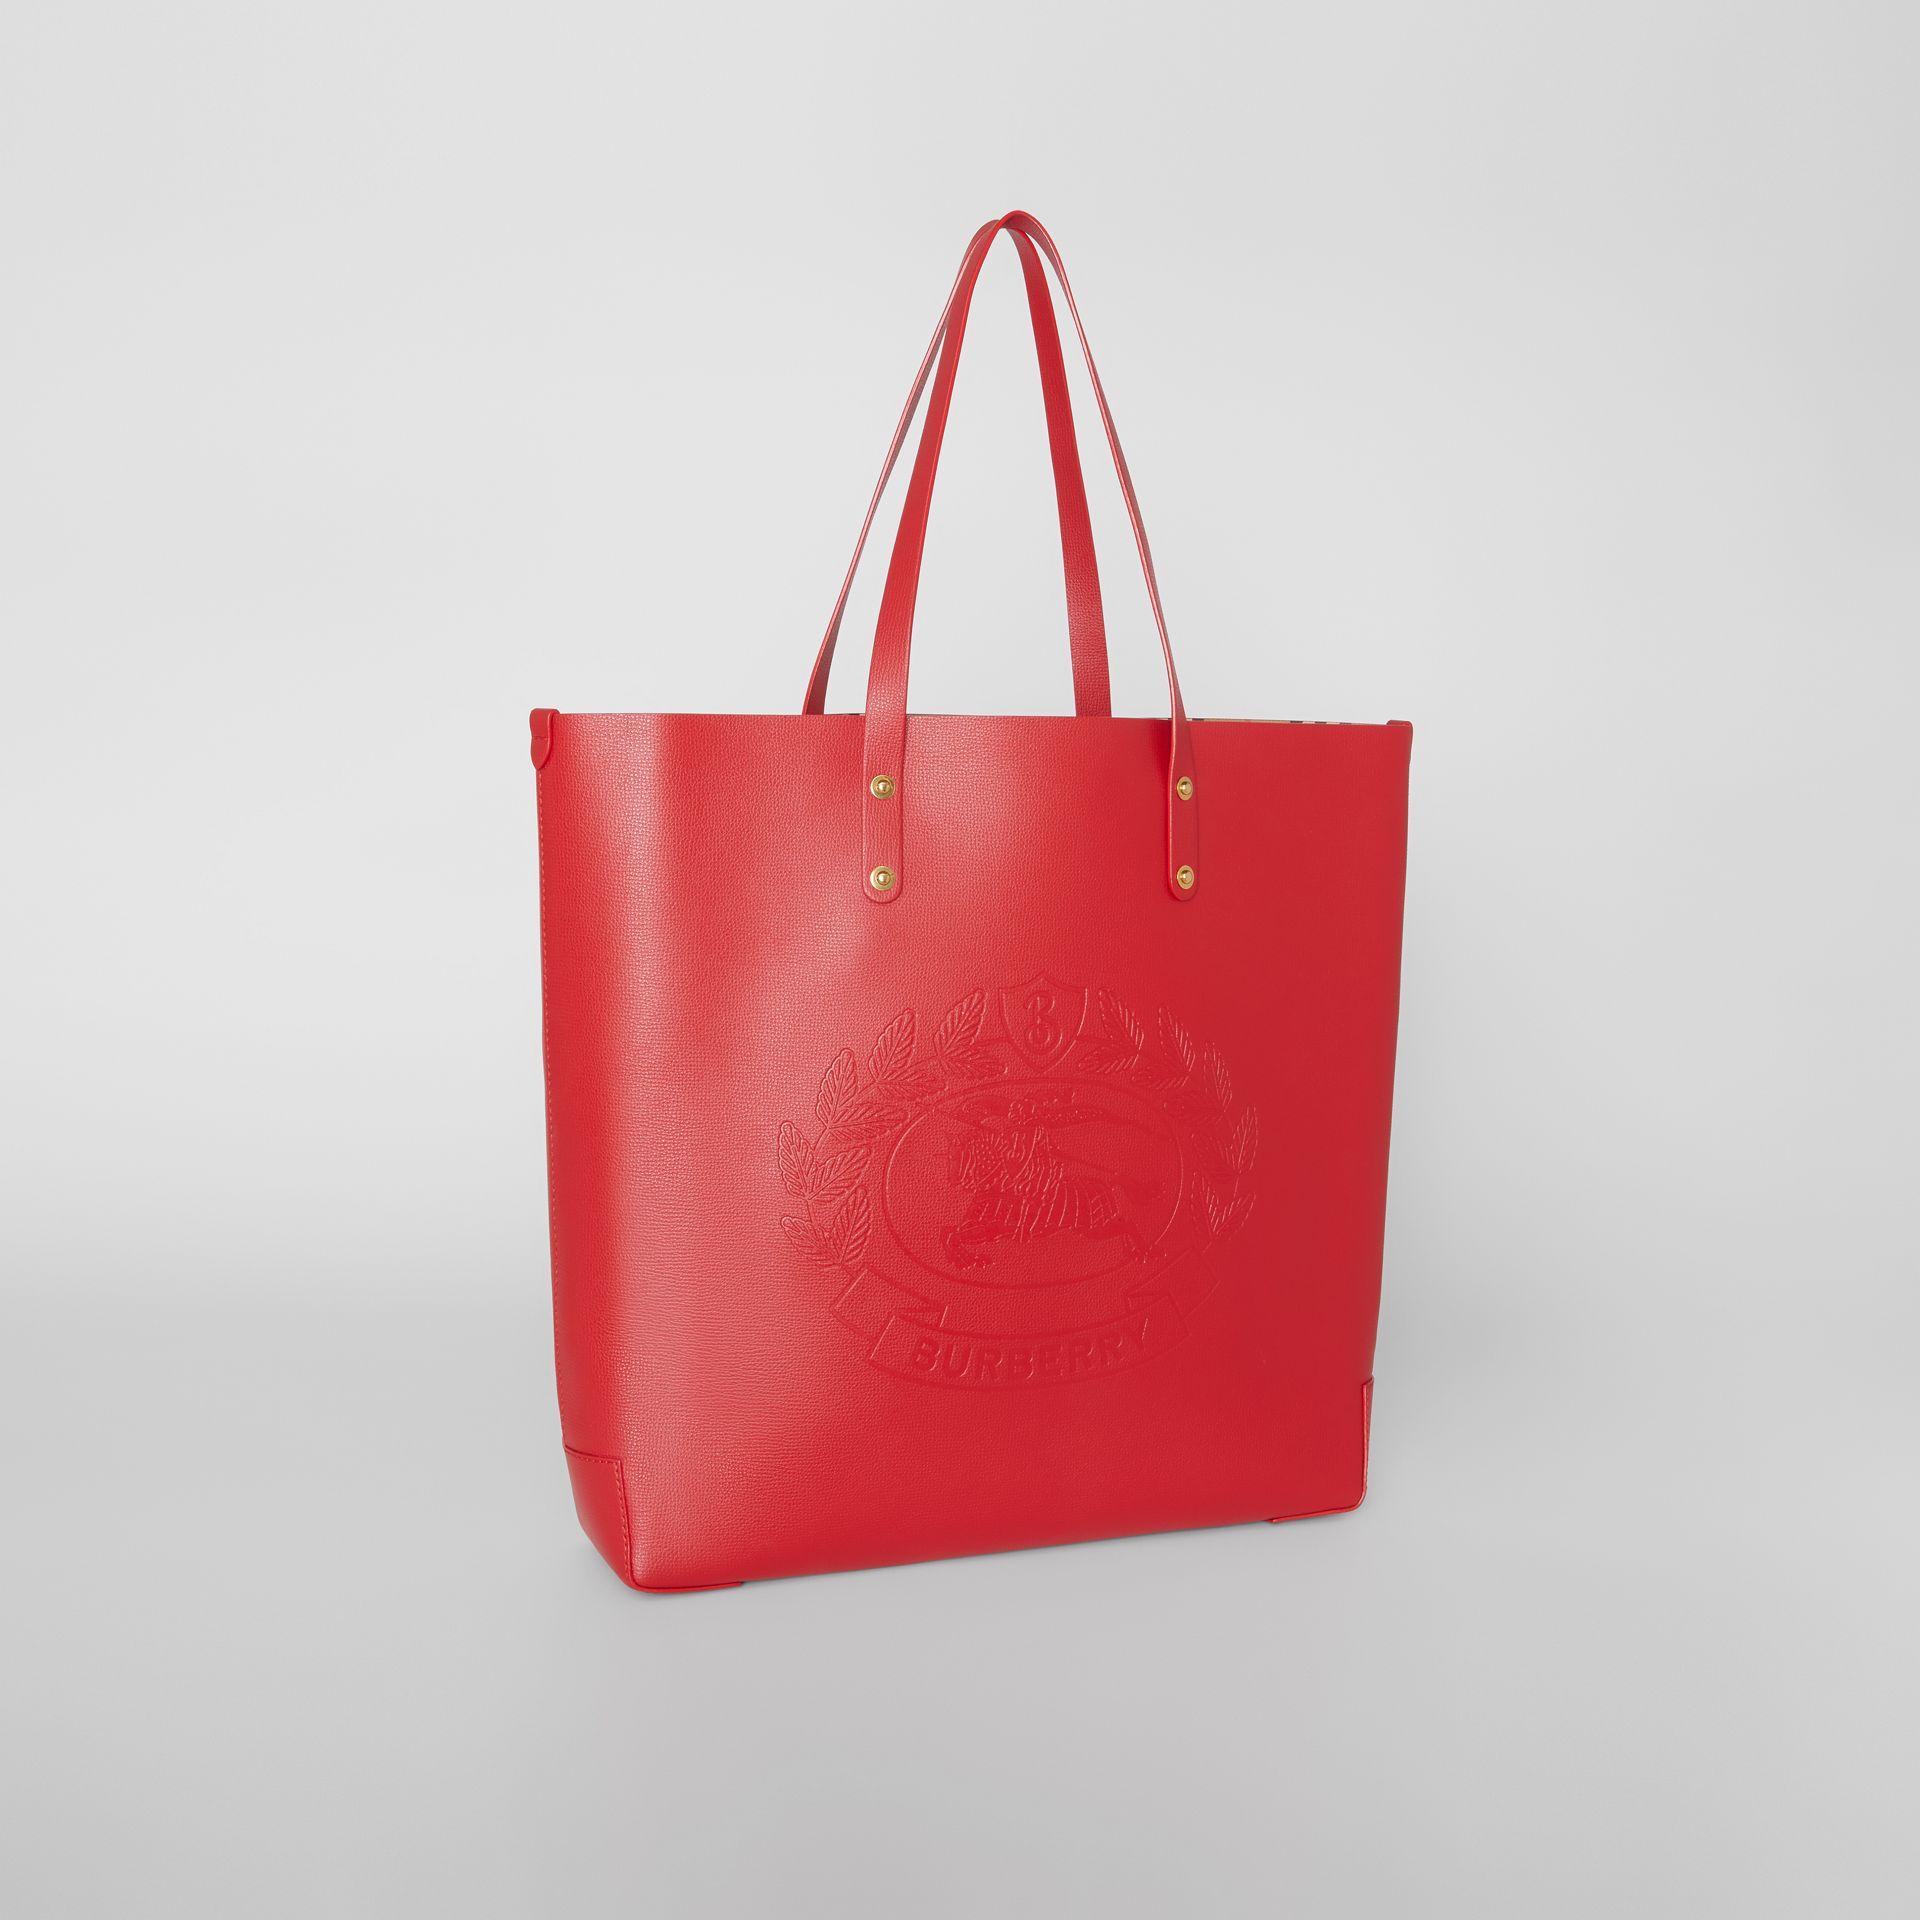 Embossed Crest Leather Tote in Rust Red - Women | Burberry United States - gallery image 6